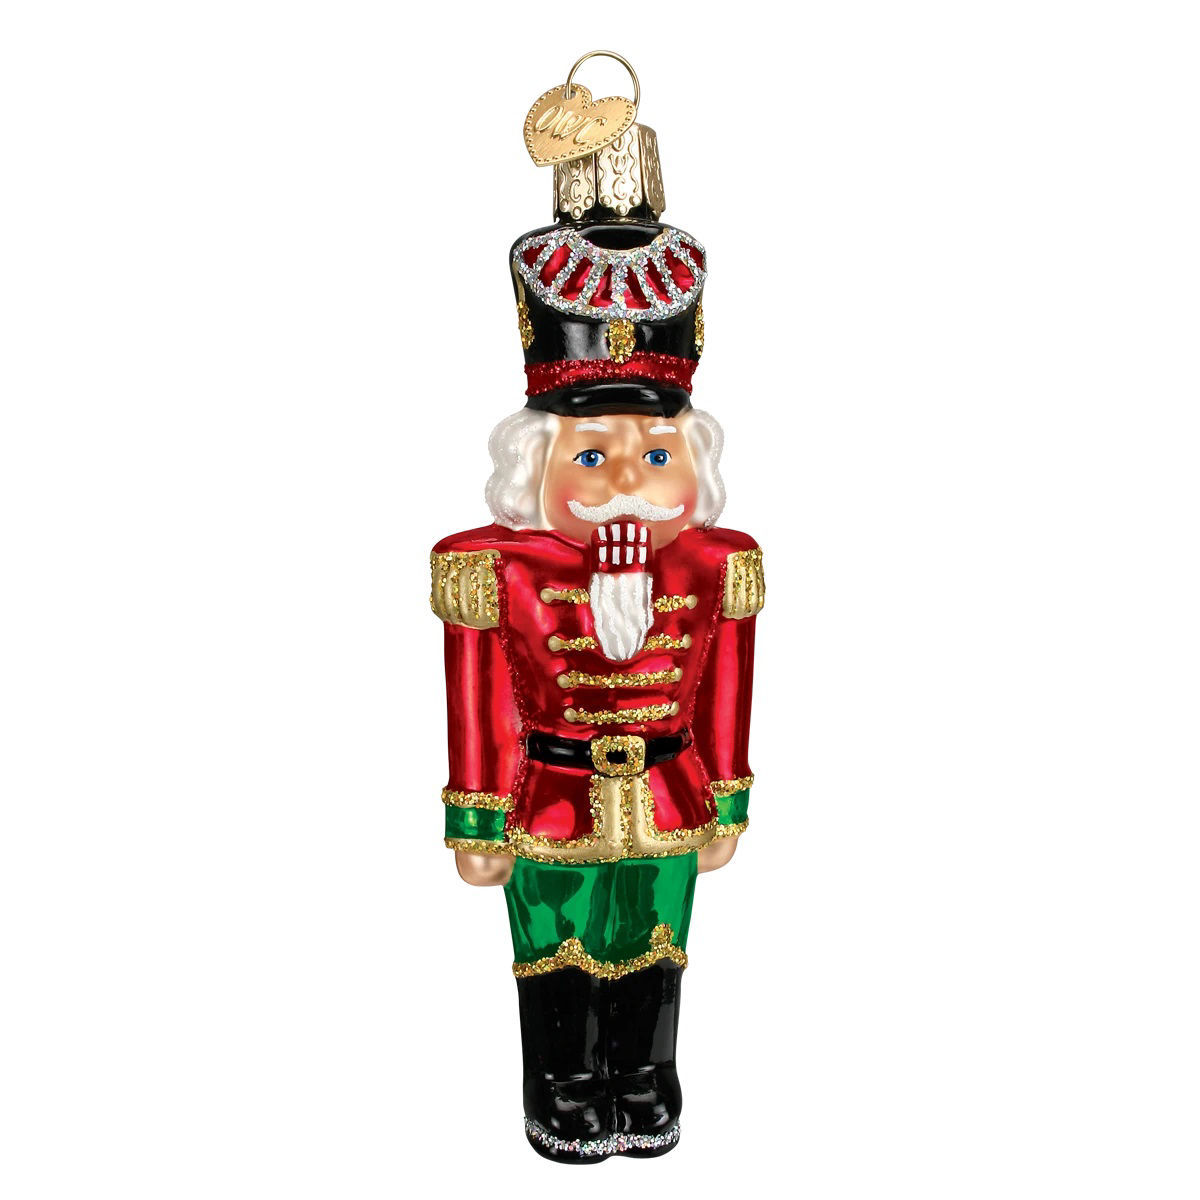 Nutcracker General Ornament by Old World Christmas